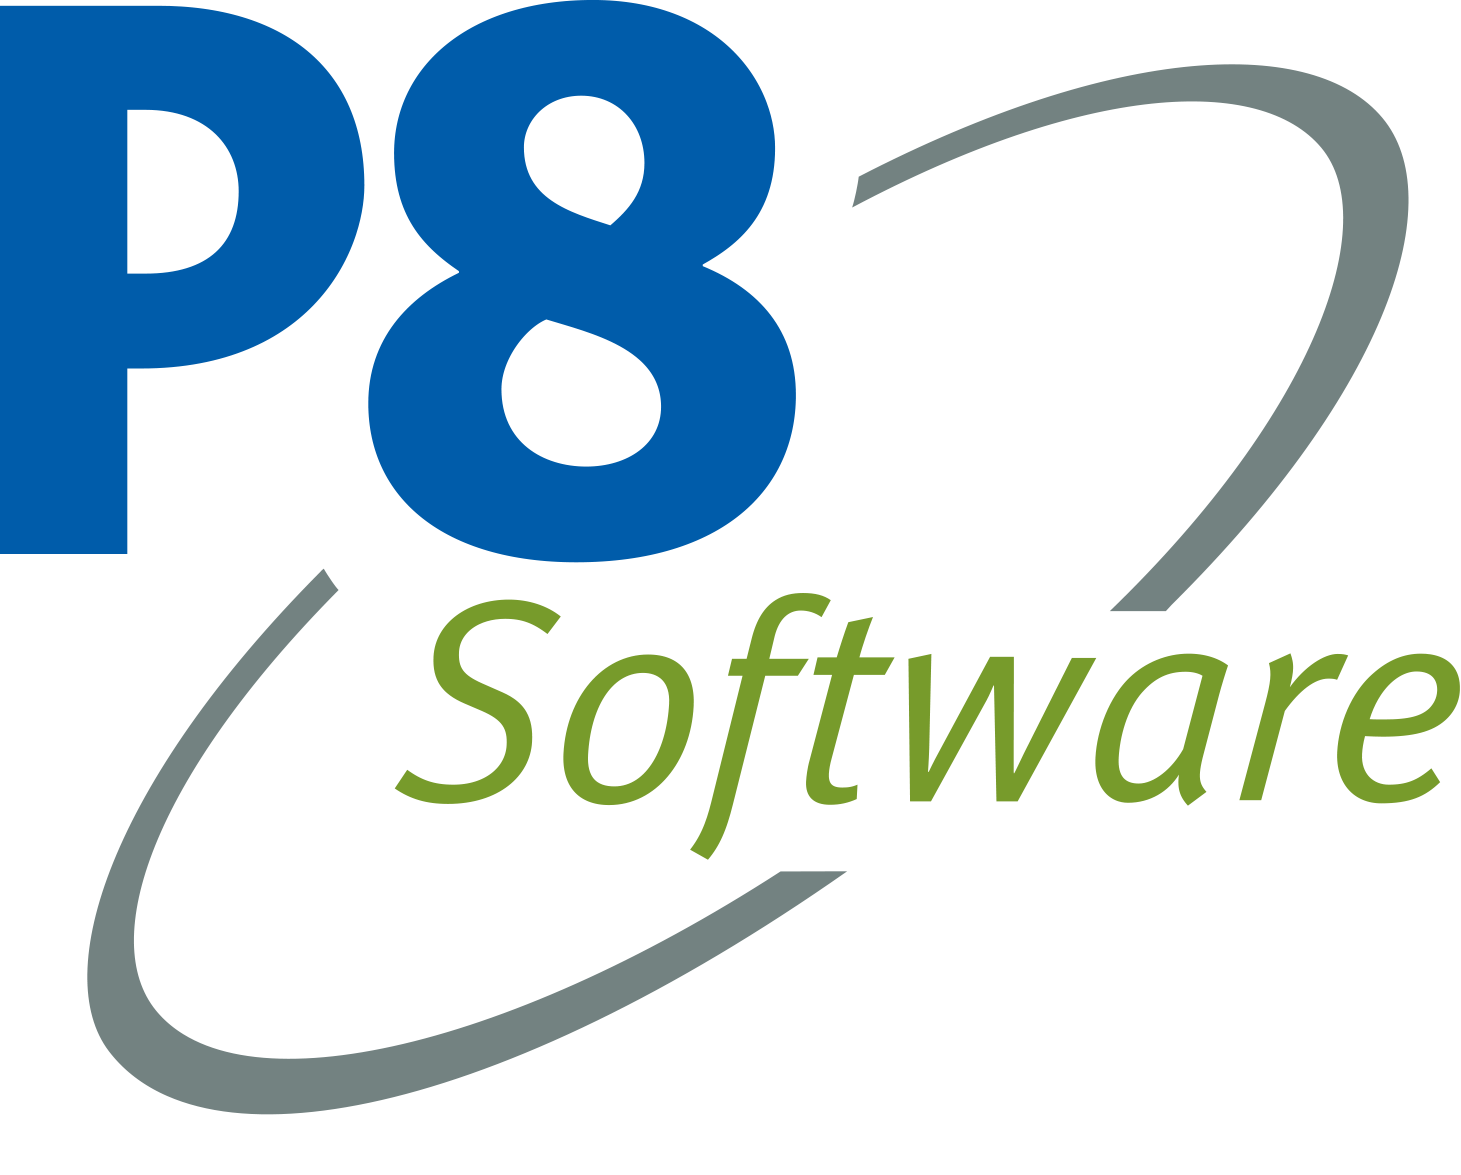 P8-Software